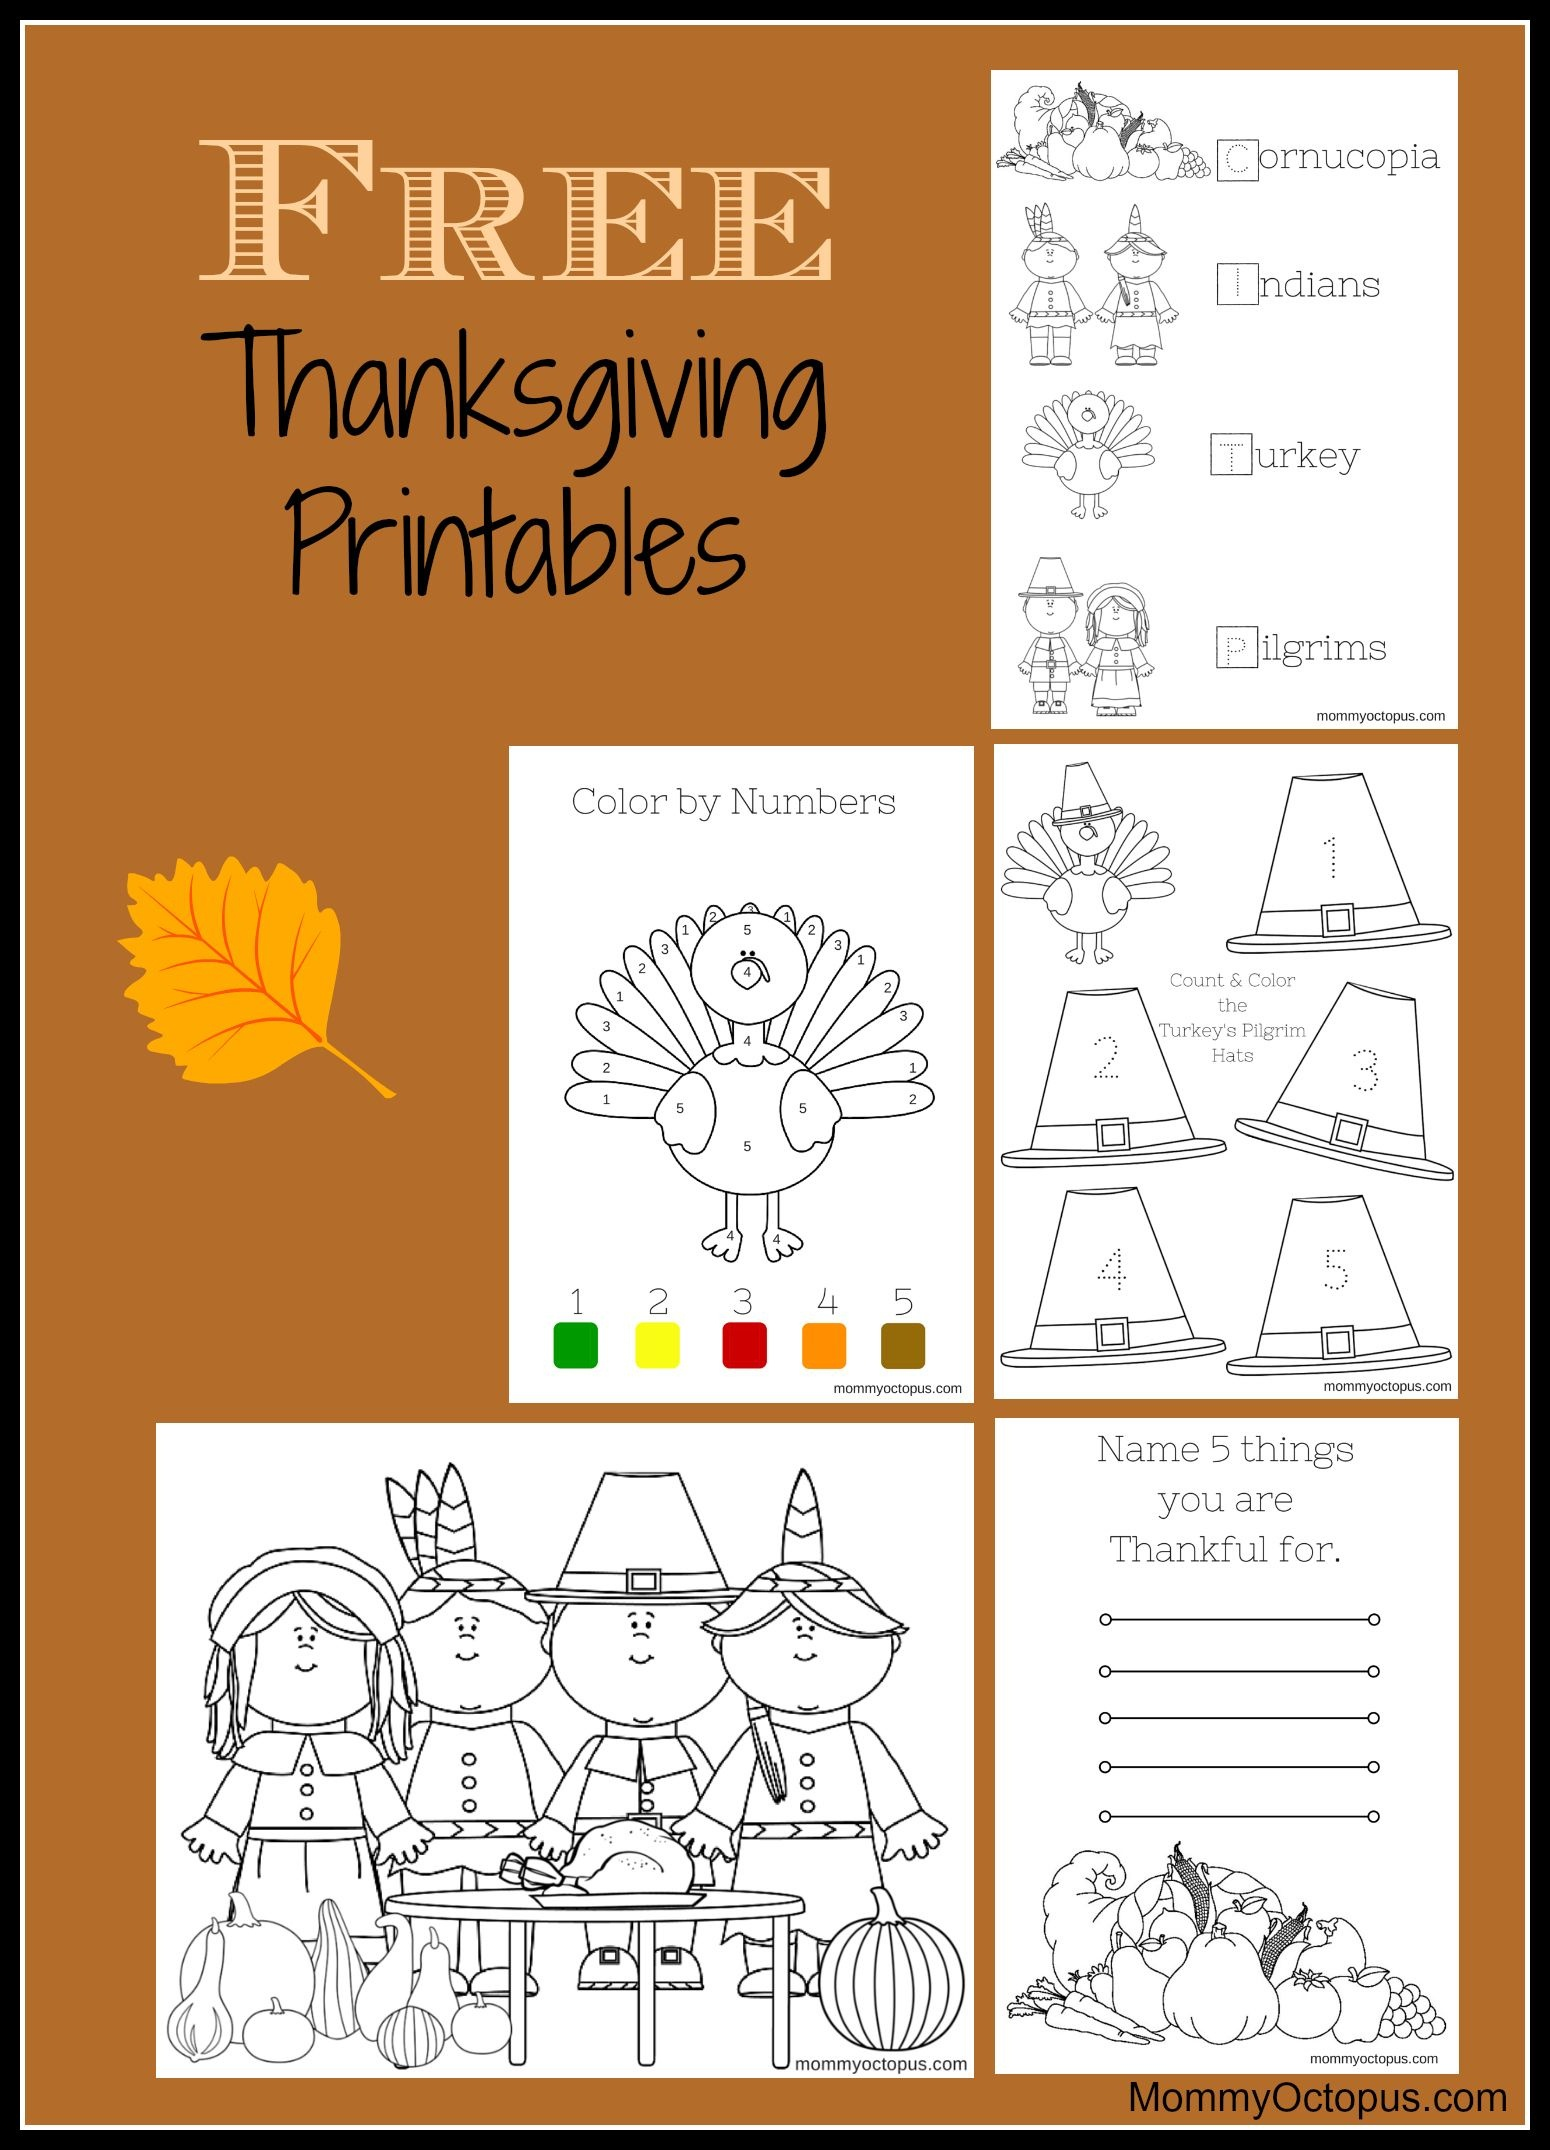 Free Thanksgiving Printable Activity Sheets! | Thanksgiving & Fall - Free Printable Thanksgiving Games For Adults